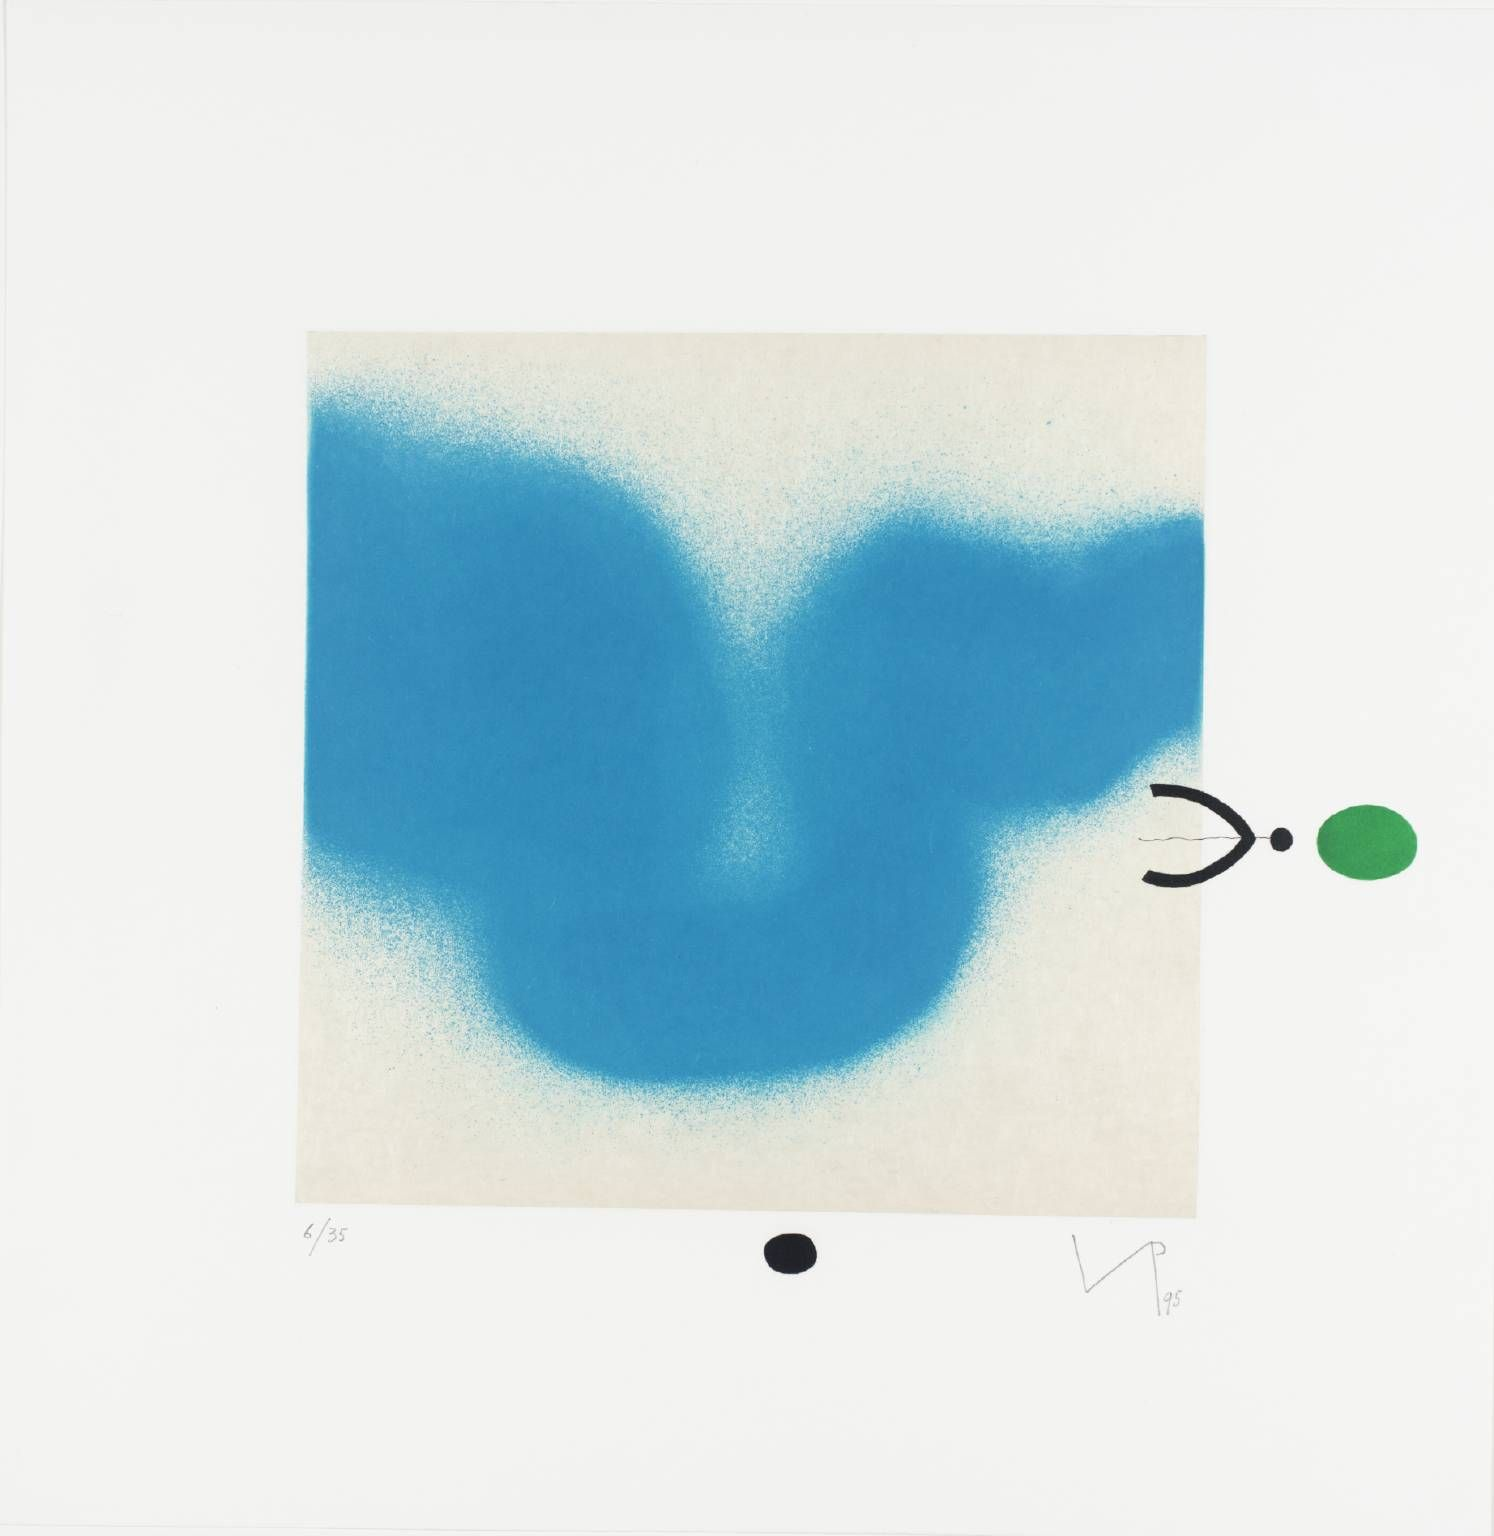 Victor Pasmore 'Magic Eye 5', 1995 © Tate